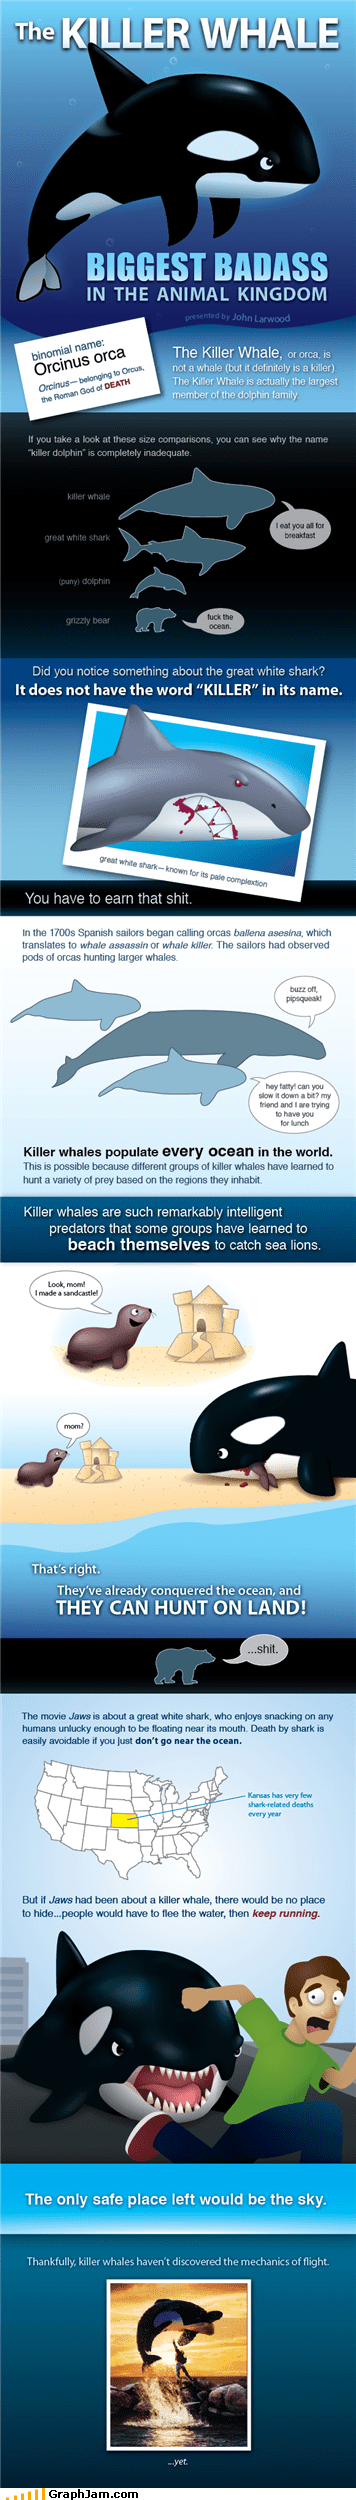 cracked evil infographic killer whales orcas - 4613946112